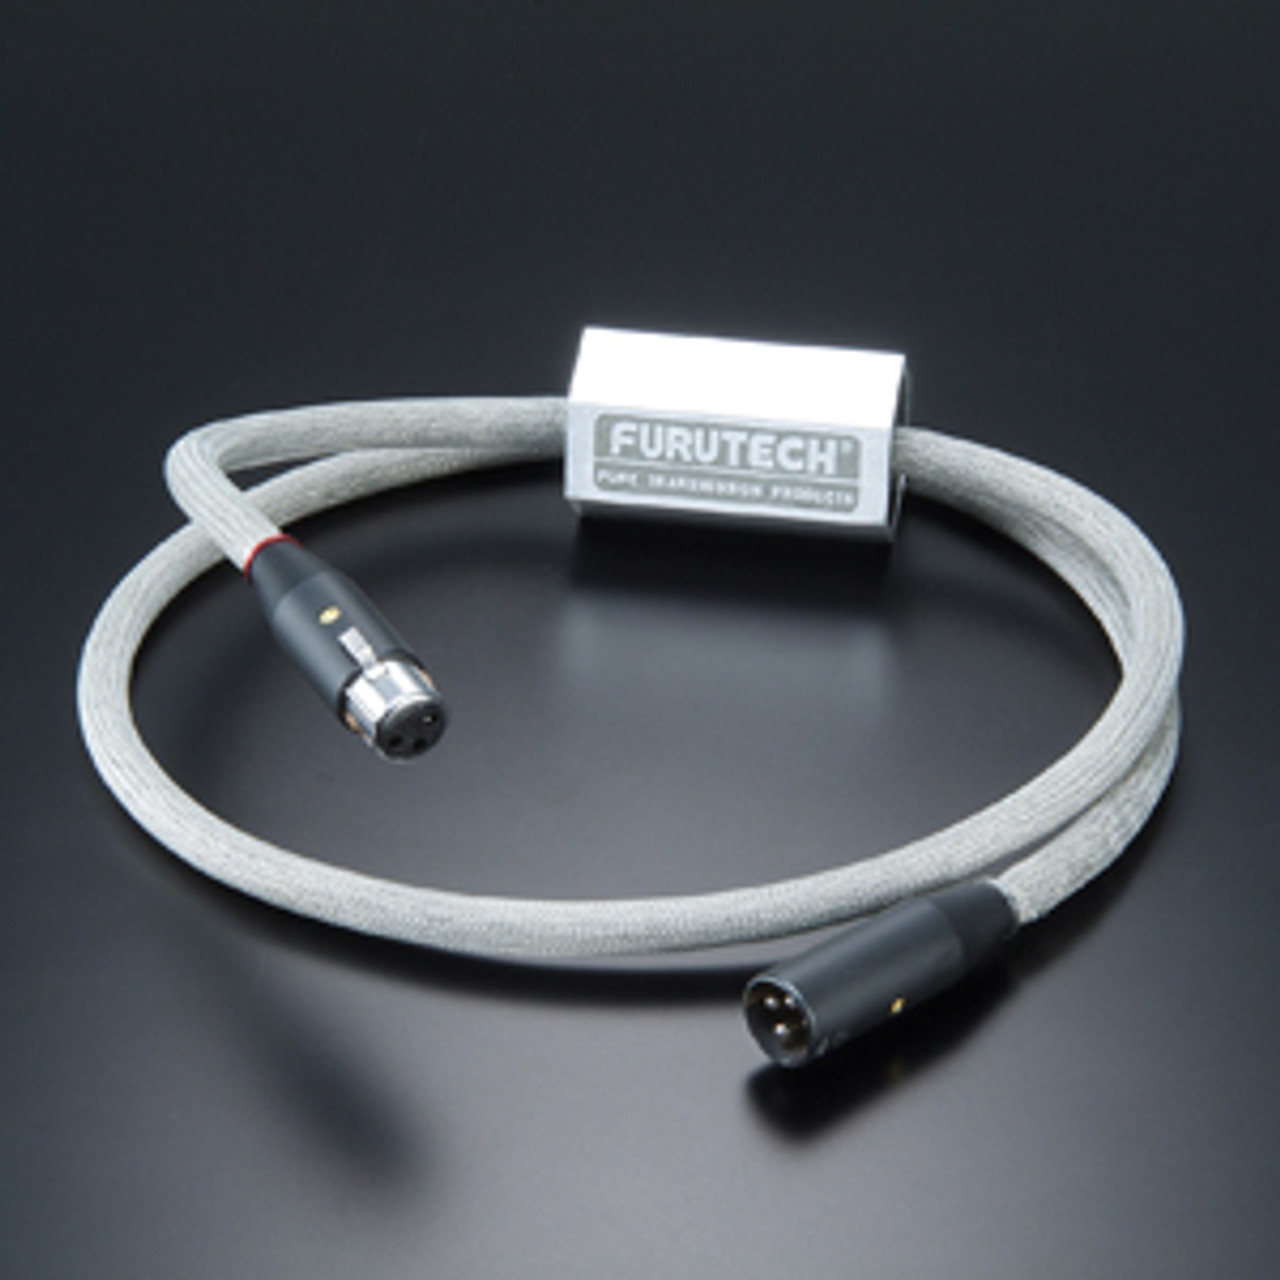 Furutech Reference III Digital XLR cable